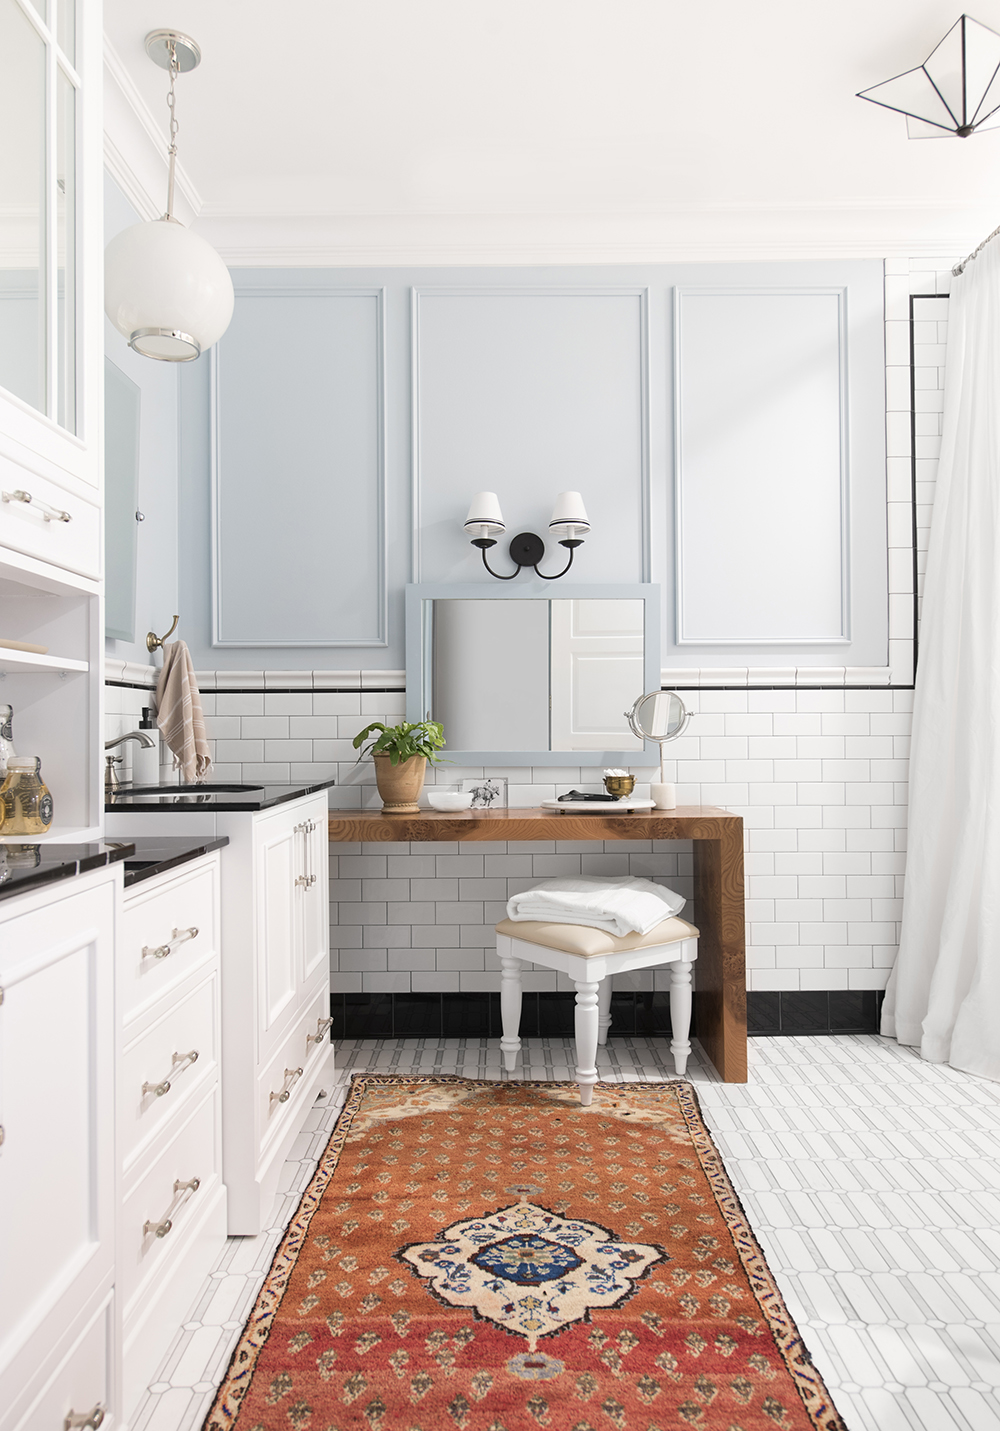 Choosing a Rug for the Bathroom (+ A Vintage Rug Giveaway) - roomfortuesday.com